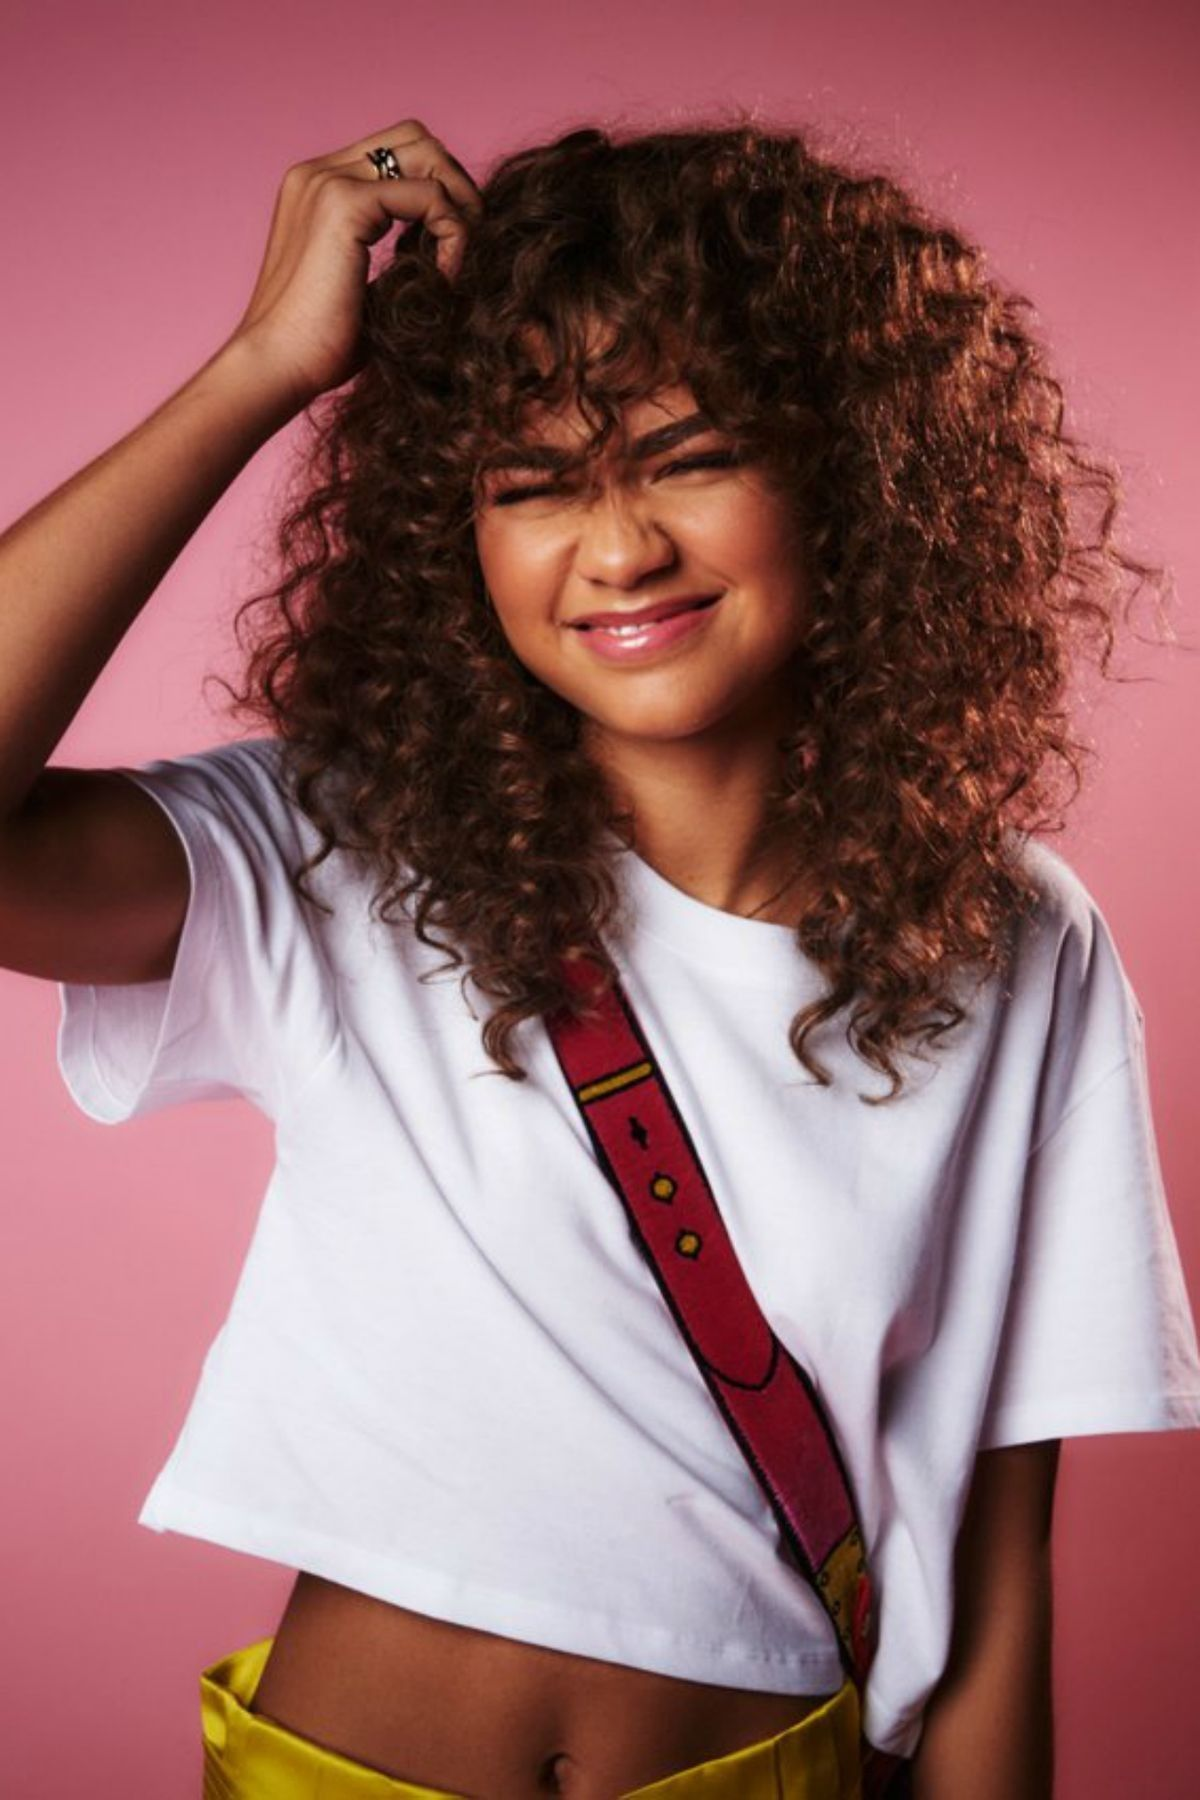 Curly Hair Suits Her Curly Hair Styles Zendaya Style Hair Styles